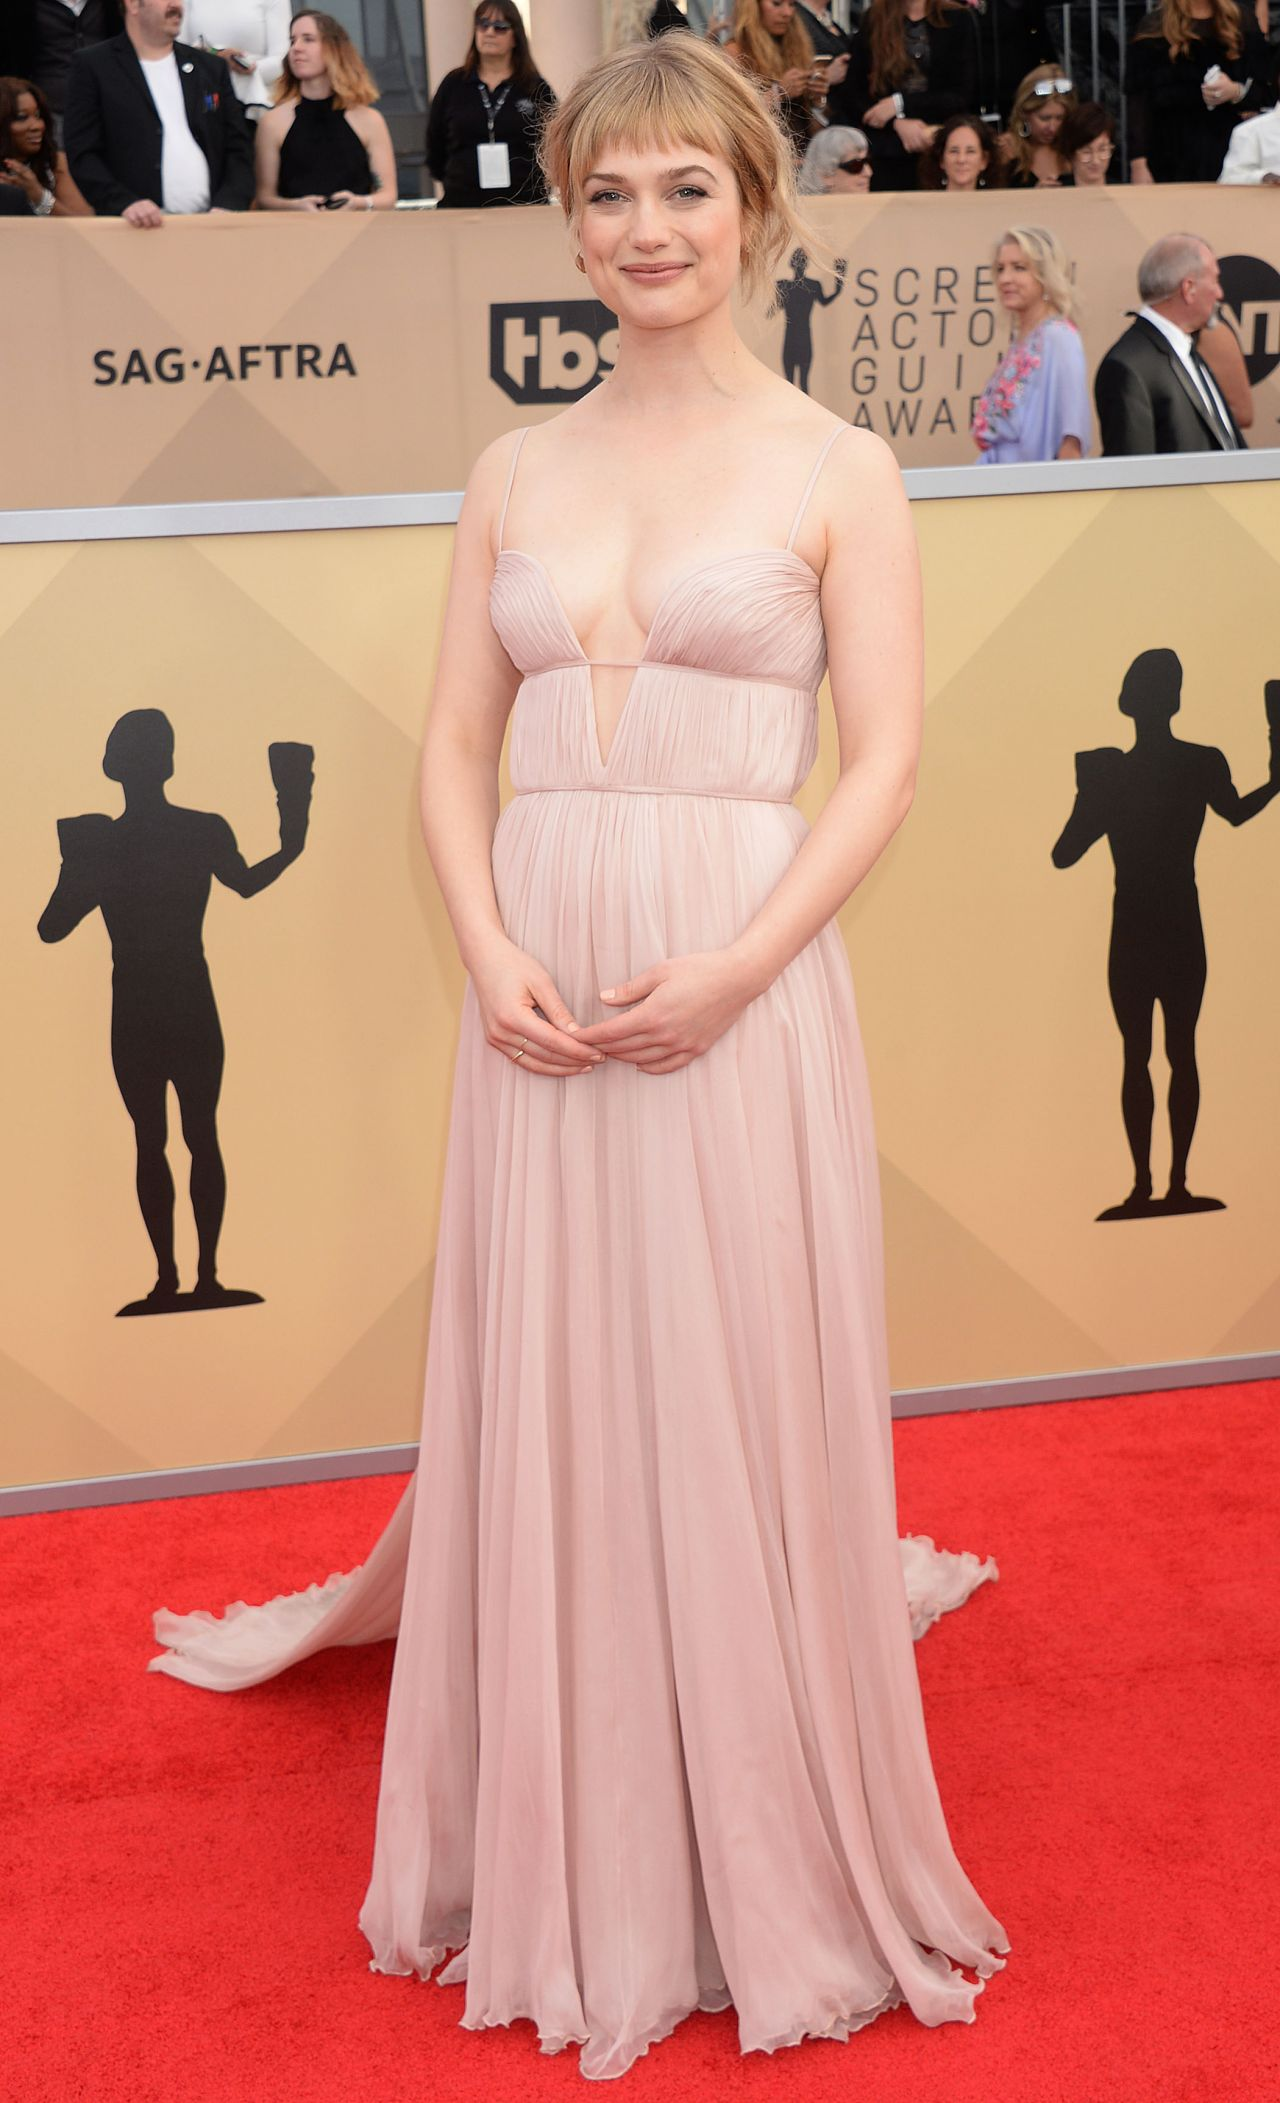 https://celebmafia.com/wp-content/uploads/2018/01/alison-sudol-2018-sag-awards-in-la-6.jpg